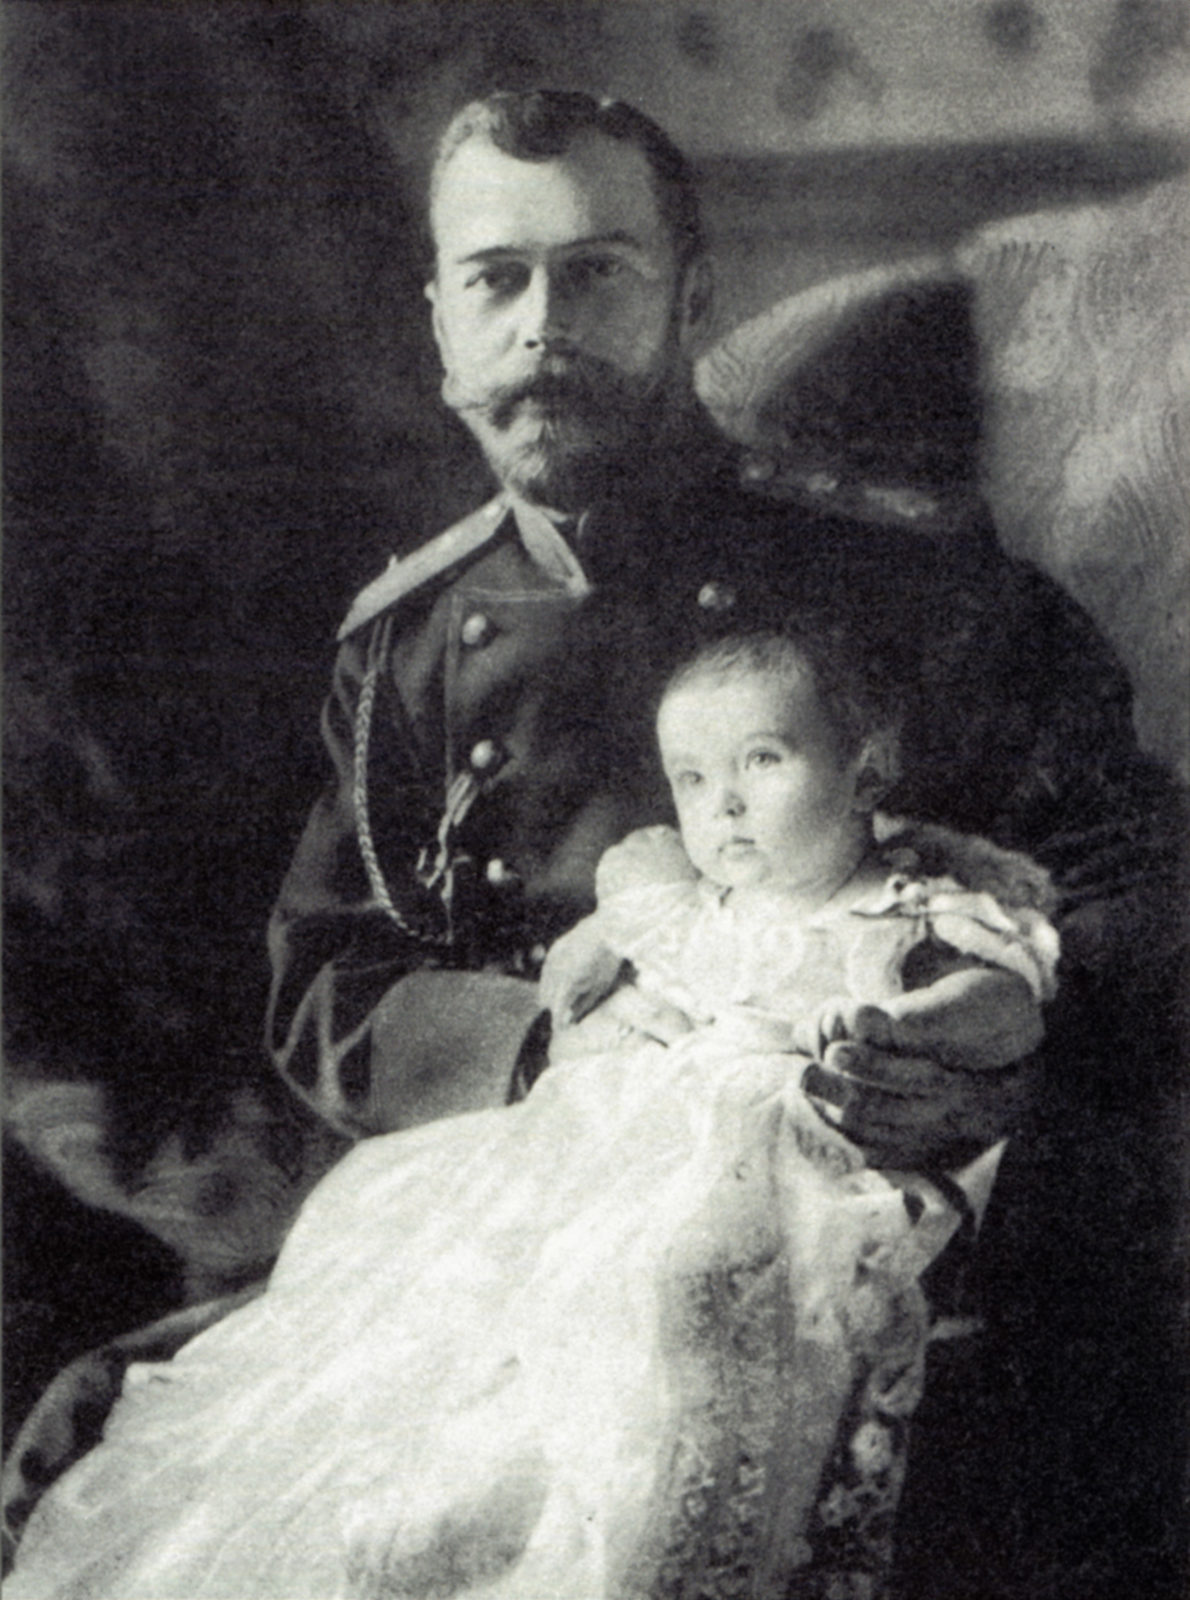 Emperor Nicholas II and heir to the Russian throne Tsesarevich Alexei Nikolaevich.